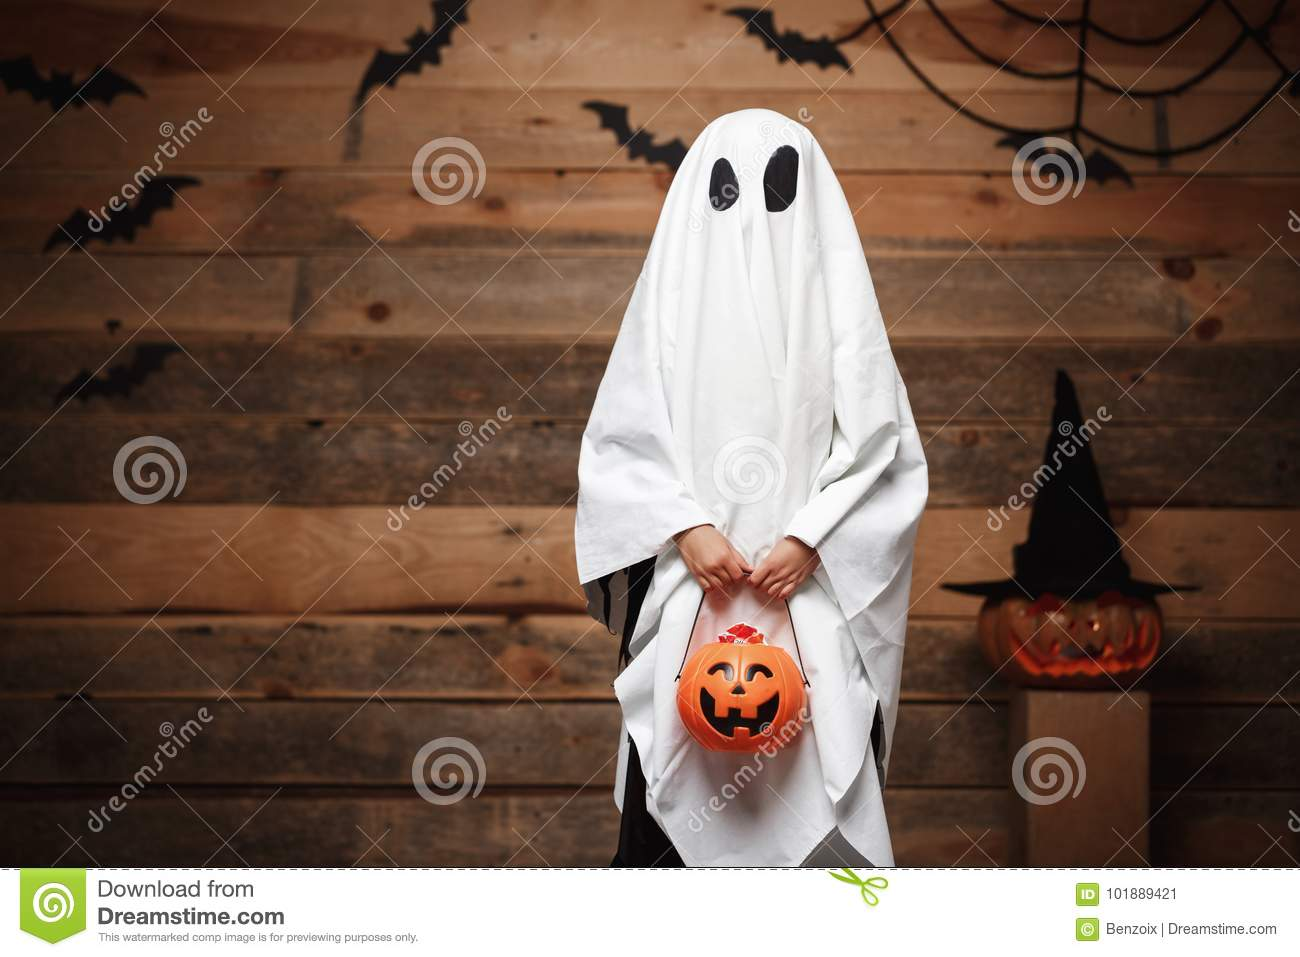 Halloween Concept - little white ghost with halloween pumpkin candy jar doing trick or treat with curved pumpkins over bats and sp